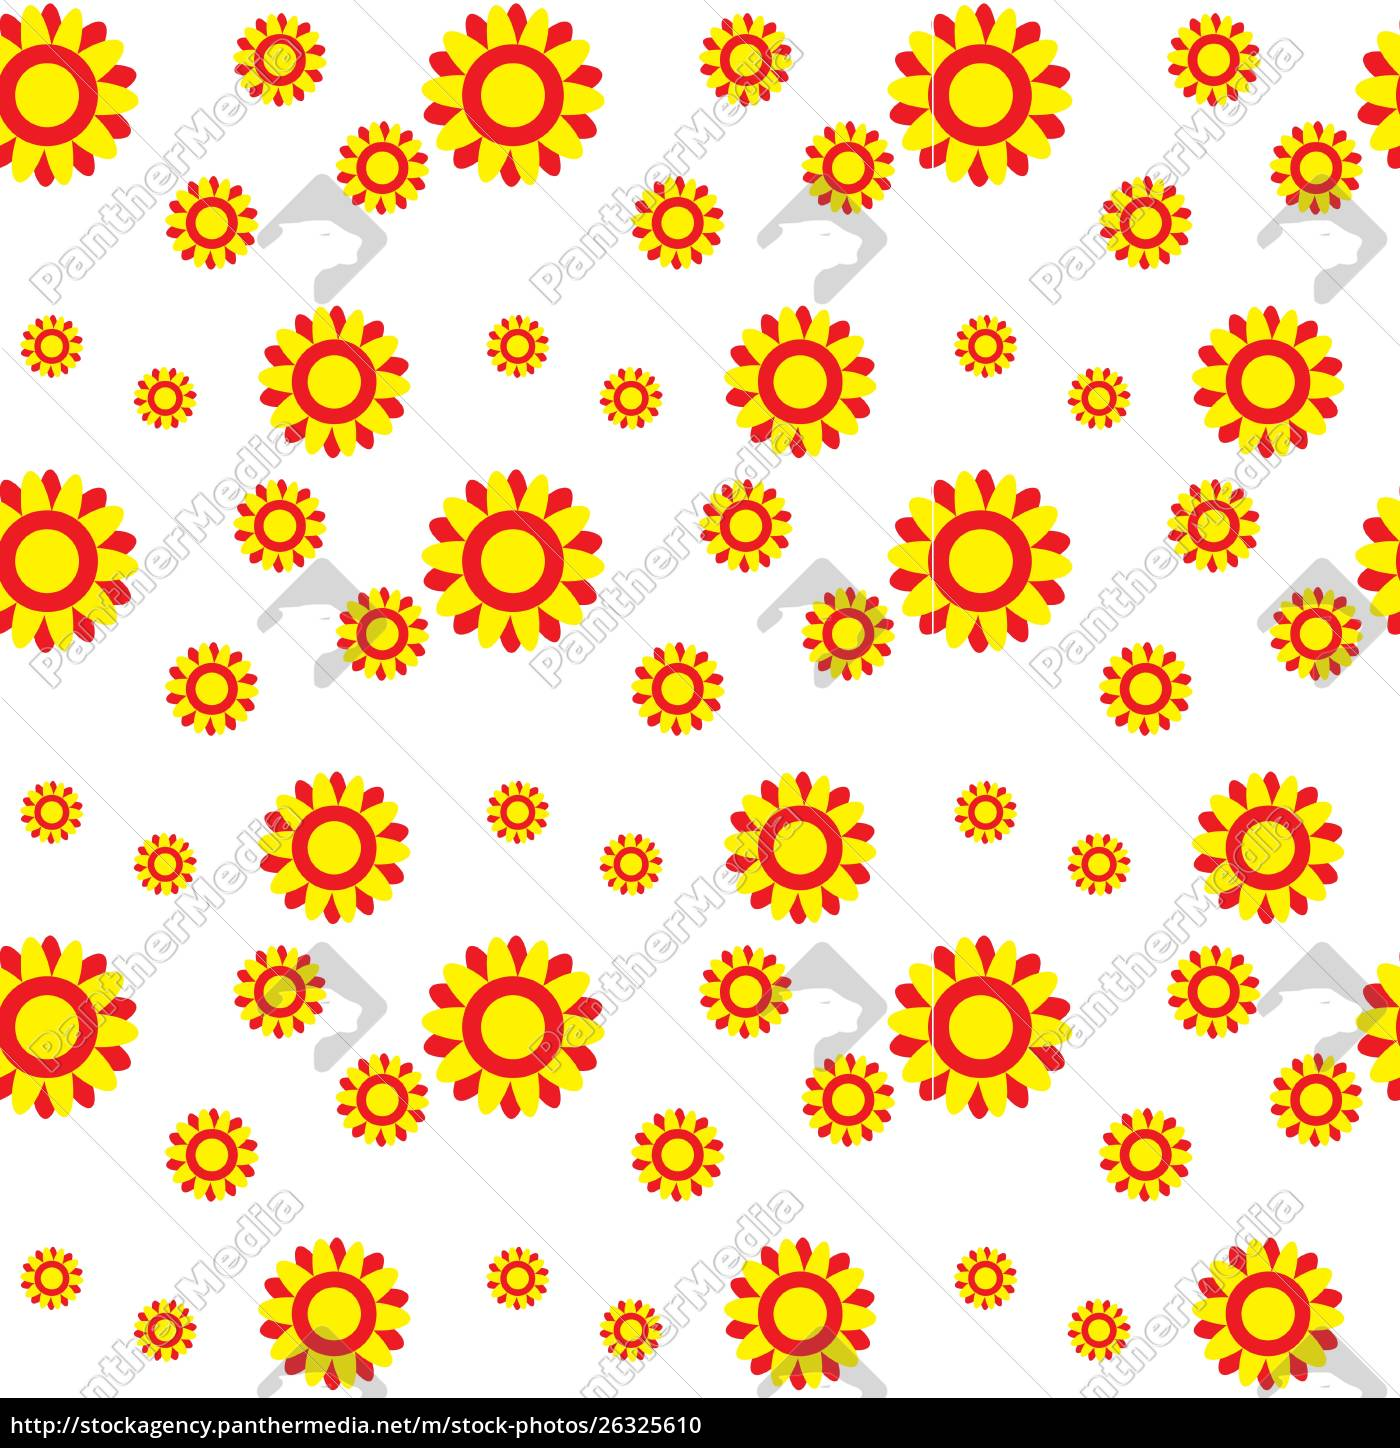 Royalty Free Vector 26325610 Abstract Colorful Background With Flowers Seamless Pattern